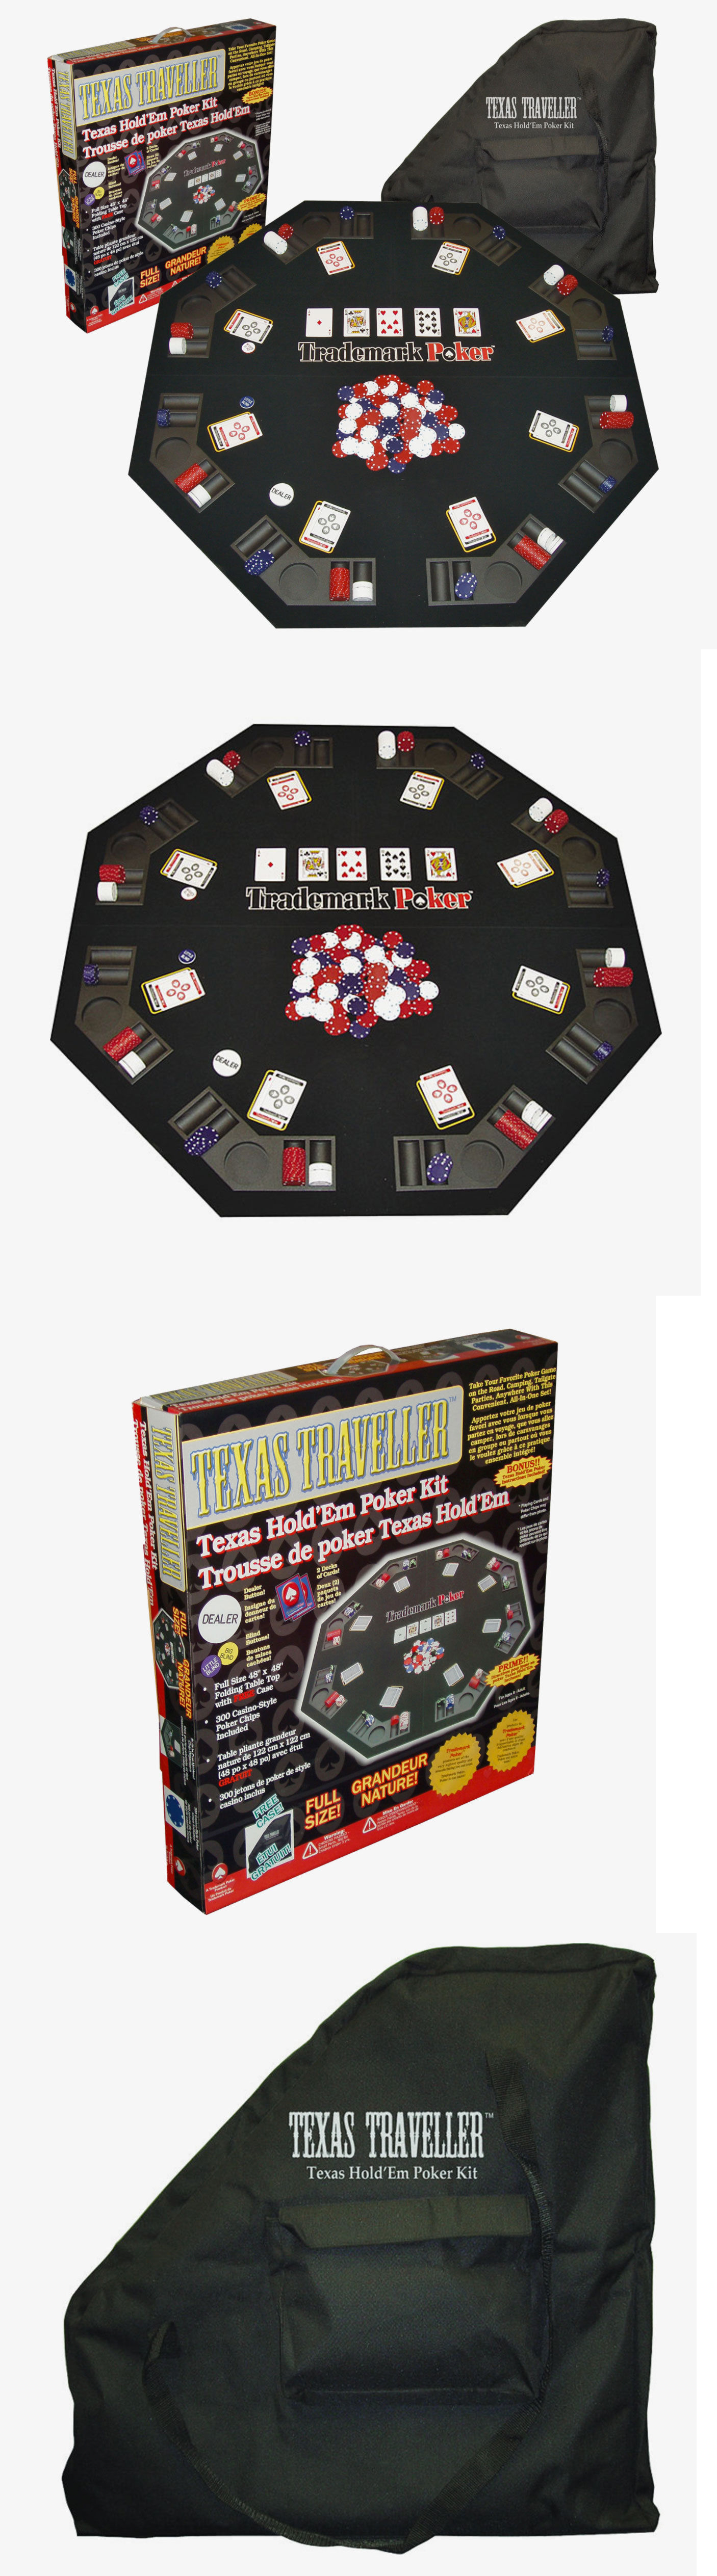 Card Tables And Tabletops 166572: Folding Poker Table Top Octagon Texas  Holdem 300 Chips Set